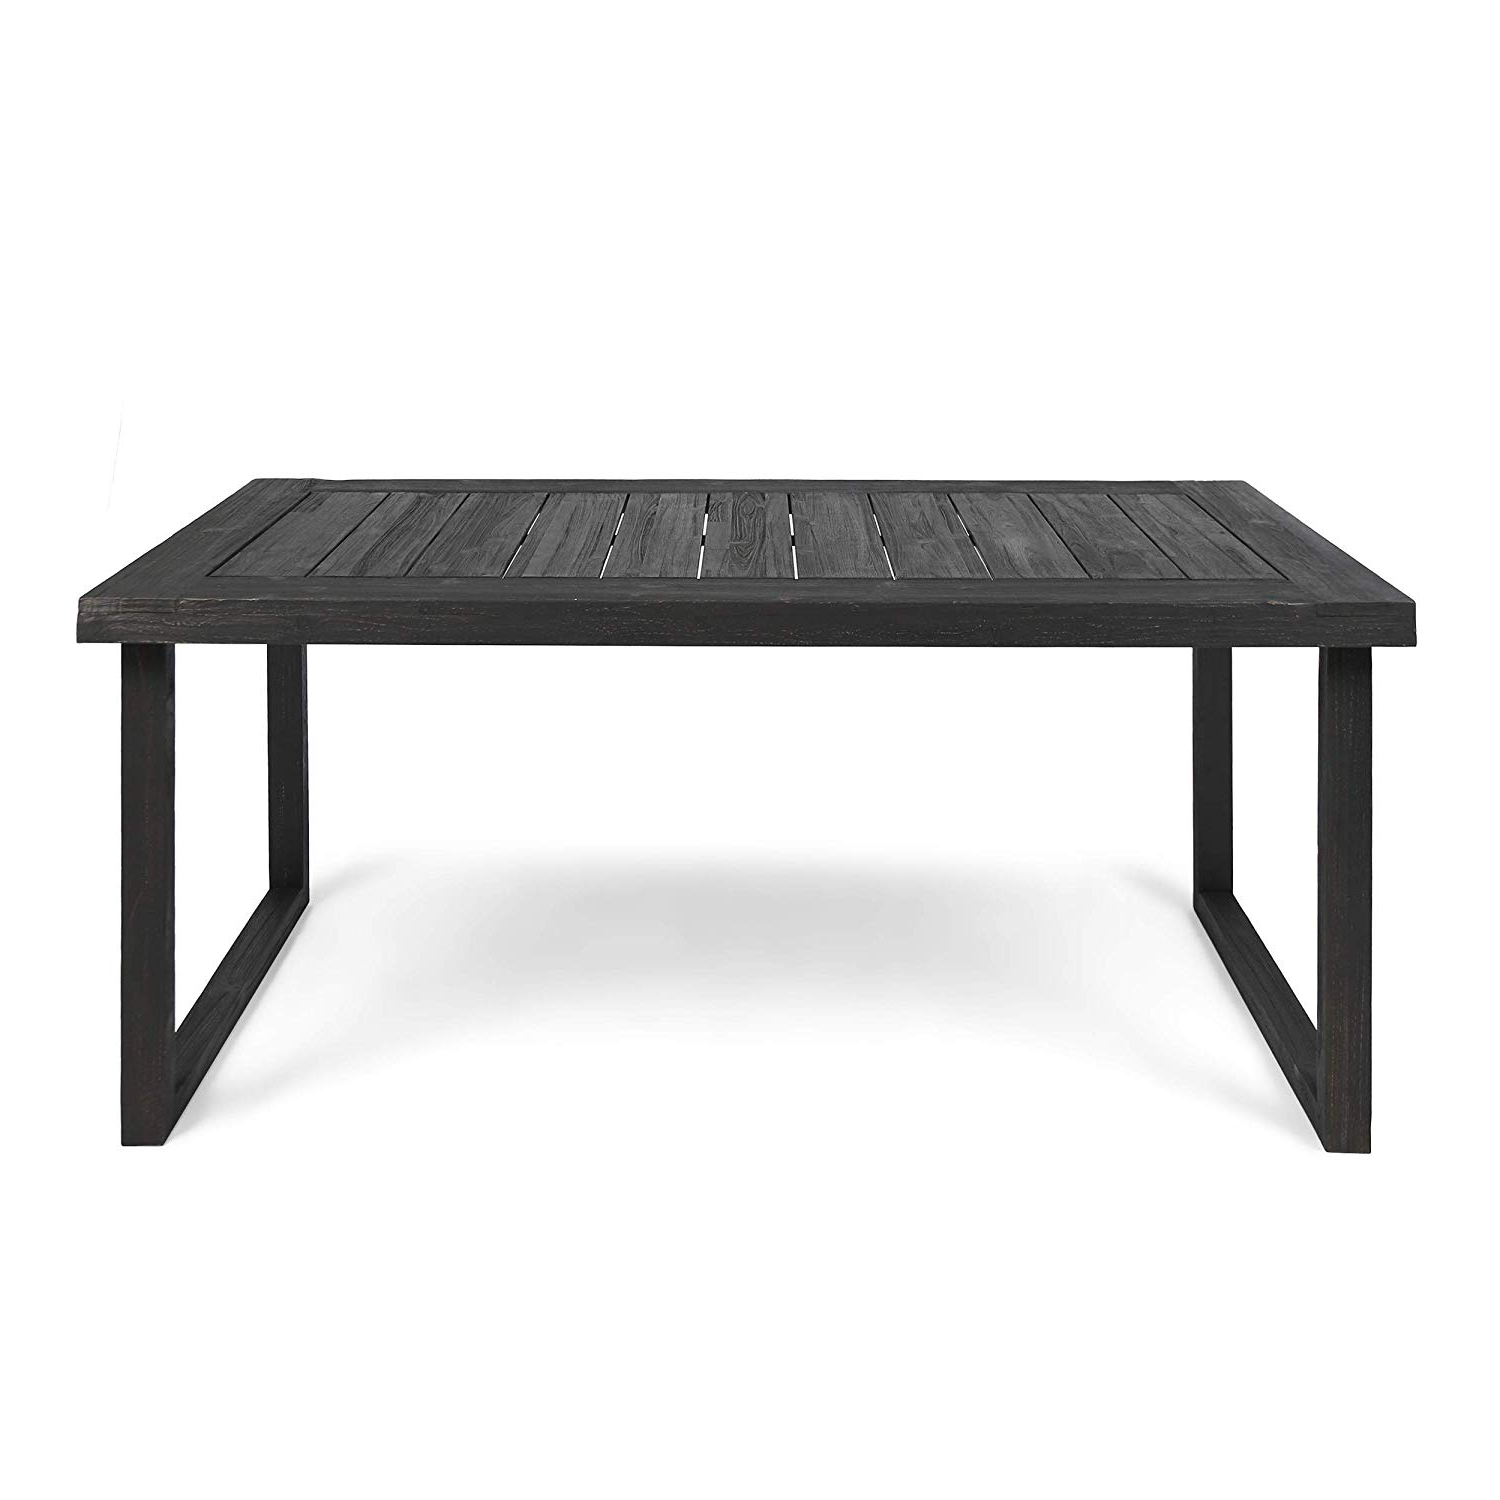 """Acacia Dining Tables With Black X Leg Pertaining To Trendy Christopher Knight Home Ann Outdoor 69"""" Acacia Wood Dining Table, Sandblast Dark Gray Finish (View 17 of 30)"""